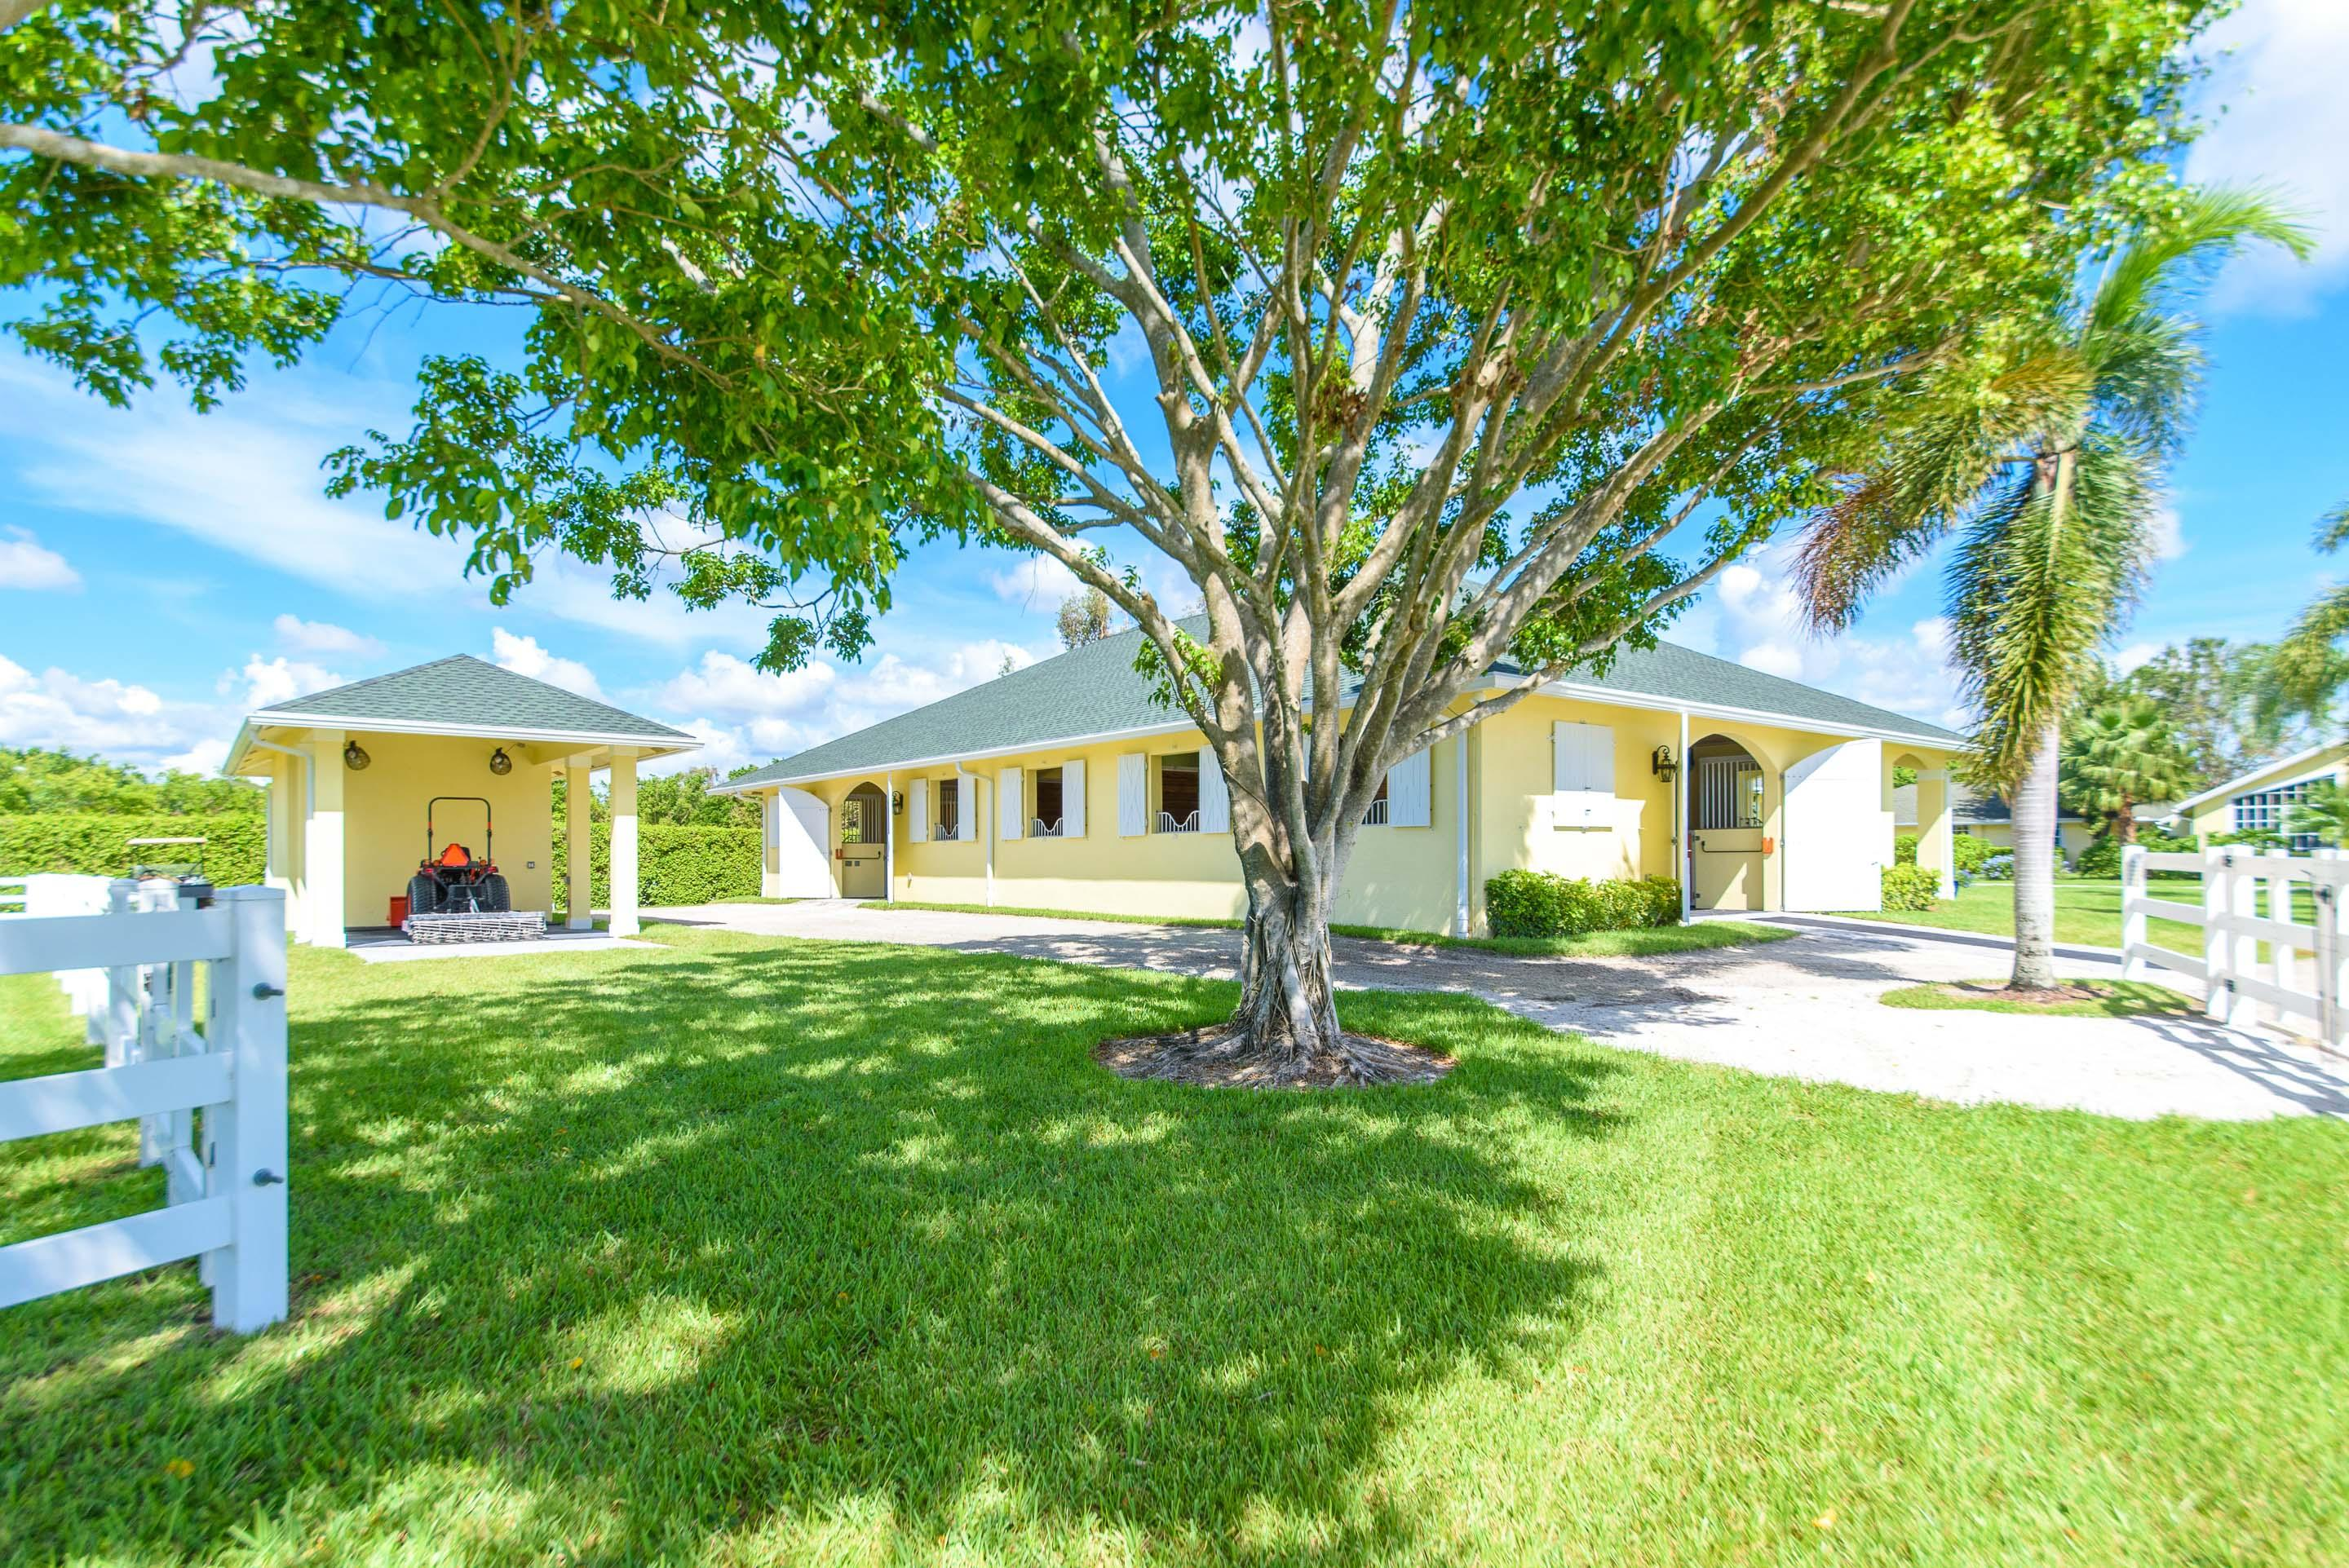 14466 Laurel Trail, Wellington, Florida 33414, 2 Bedrooms Bedrooms, ,2.1 BathroomsBathrooms,Barn,For Rent,Laurel,1,RX-10616232